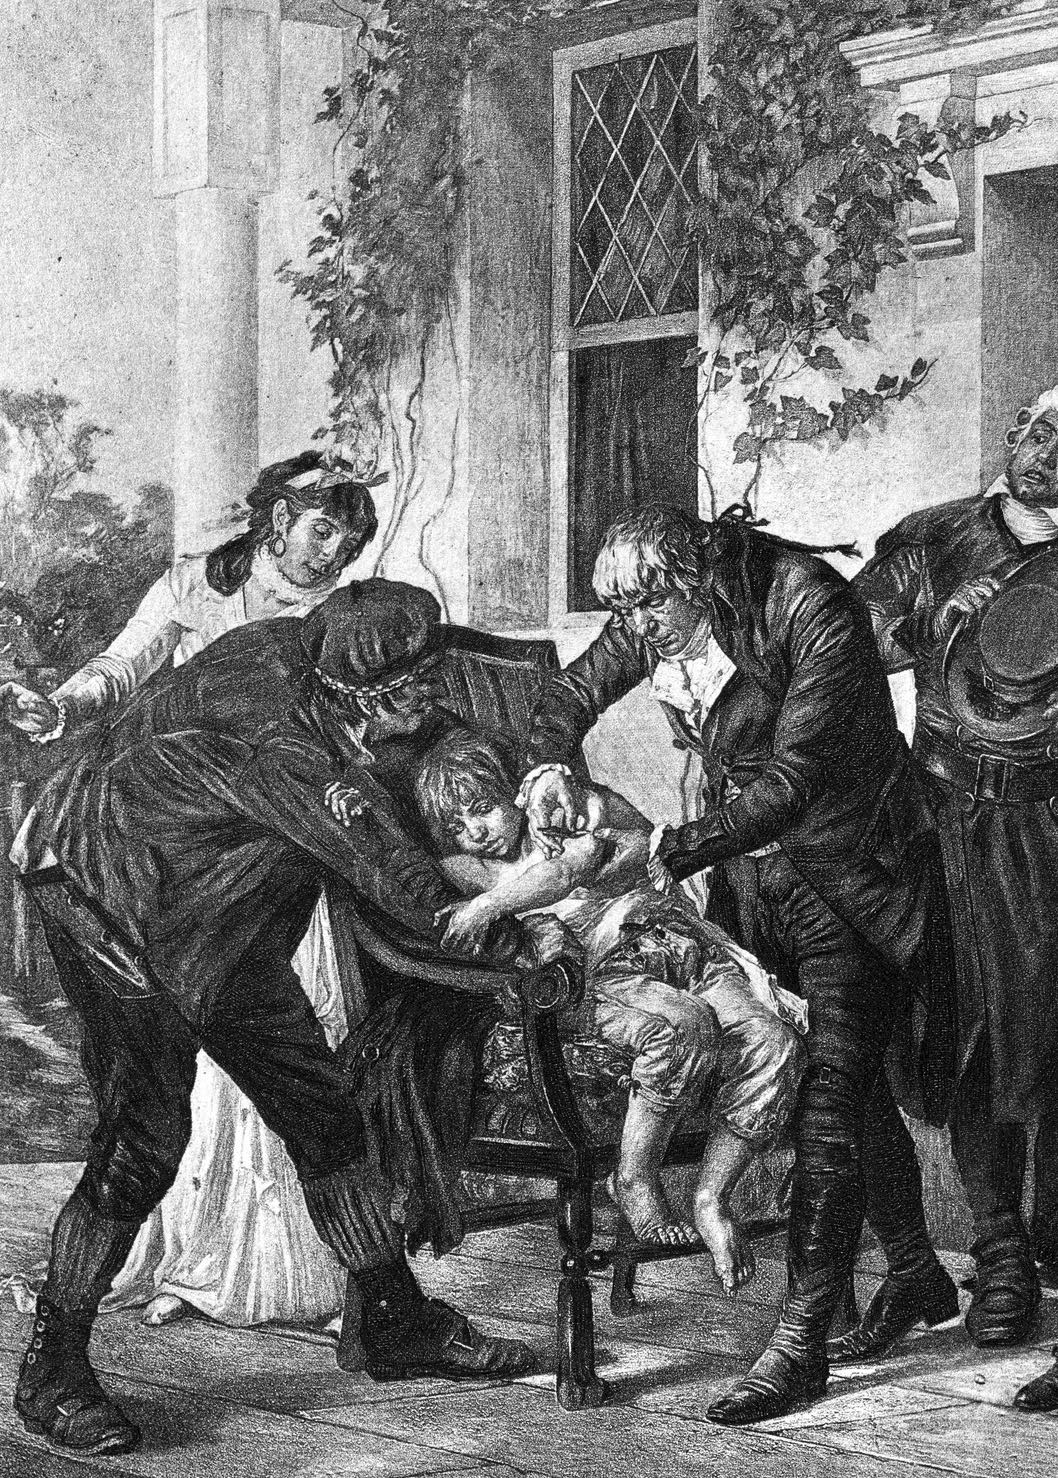 Edward Jenner administers first vaccine